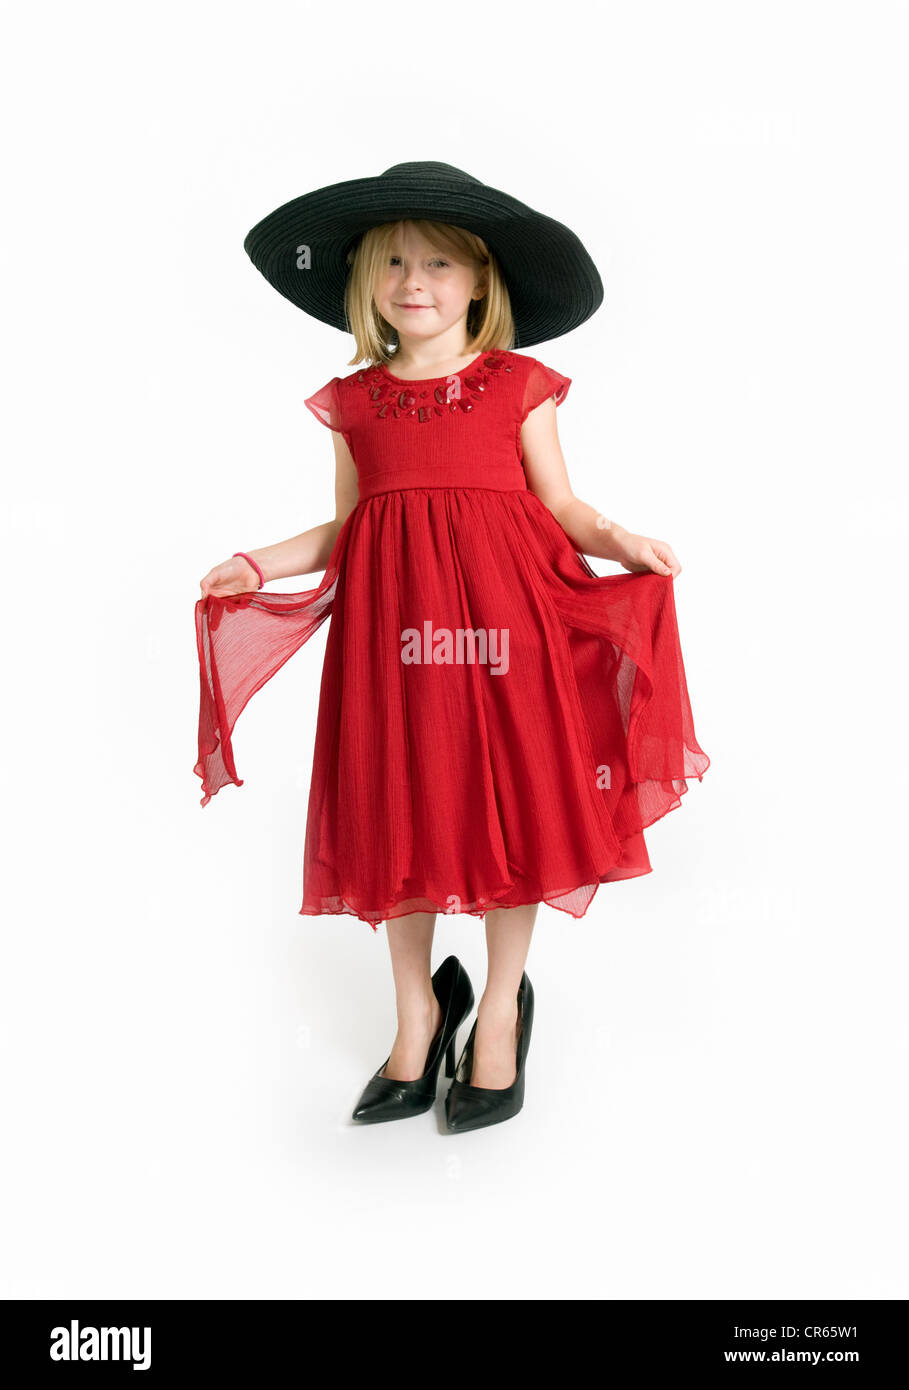 Studio image of Caucasian 7 year old girl in red dress playing dress up on a white background - Stock Image